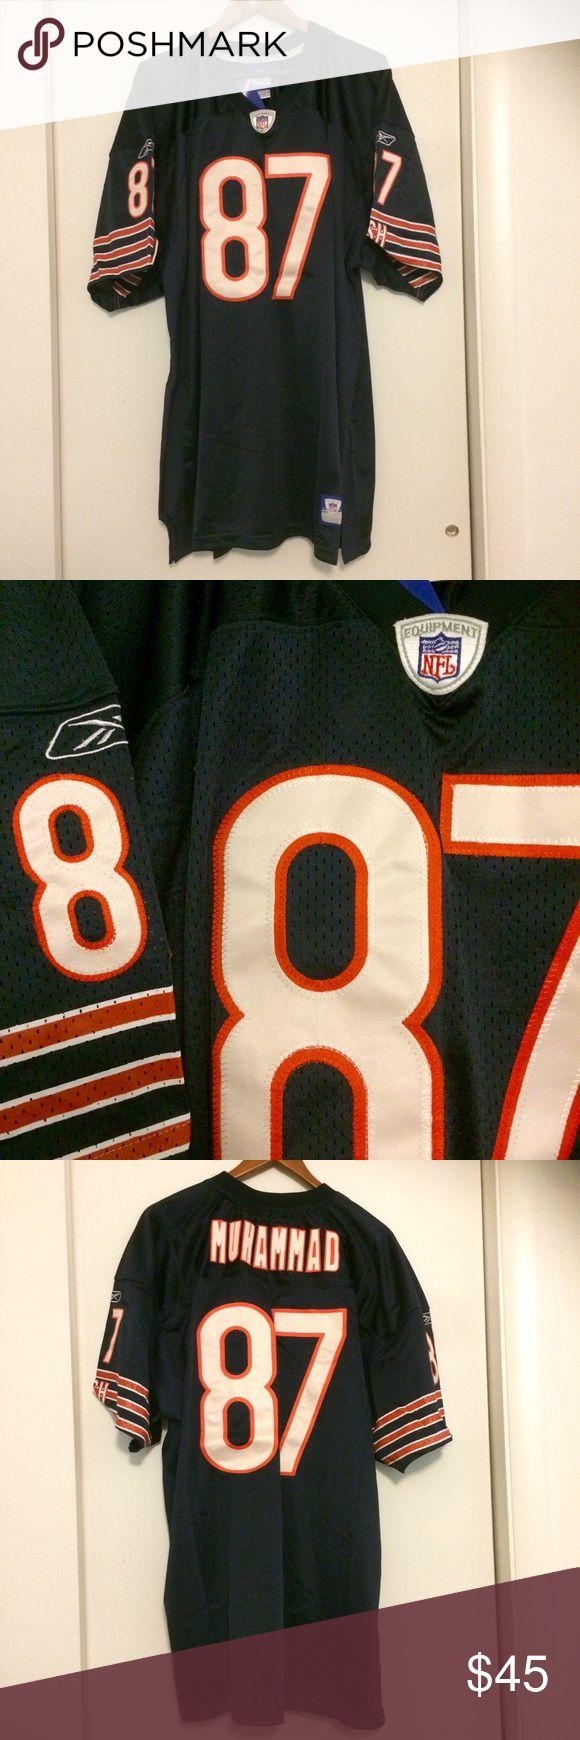 "Official NFL Chicago Bears football jersey #87 This Official NFL football jersey is made by Reebok, size 54, and is brand new with tags. For The Chicago Bears, shows the name ""Muhammad"" on the back. Get your game gear just in time for Football Season! Great condition. Party on. Reebok Other"